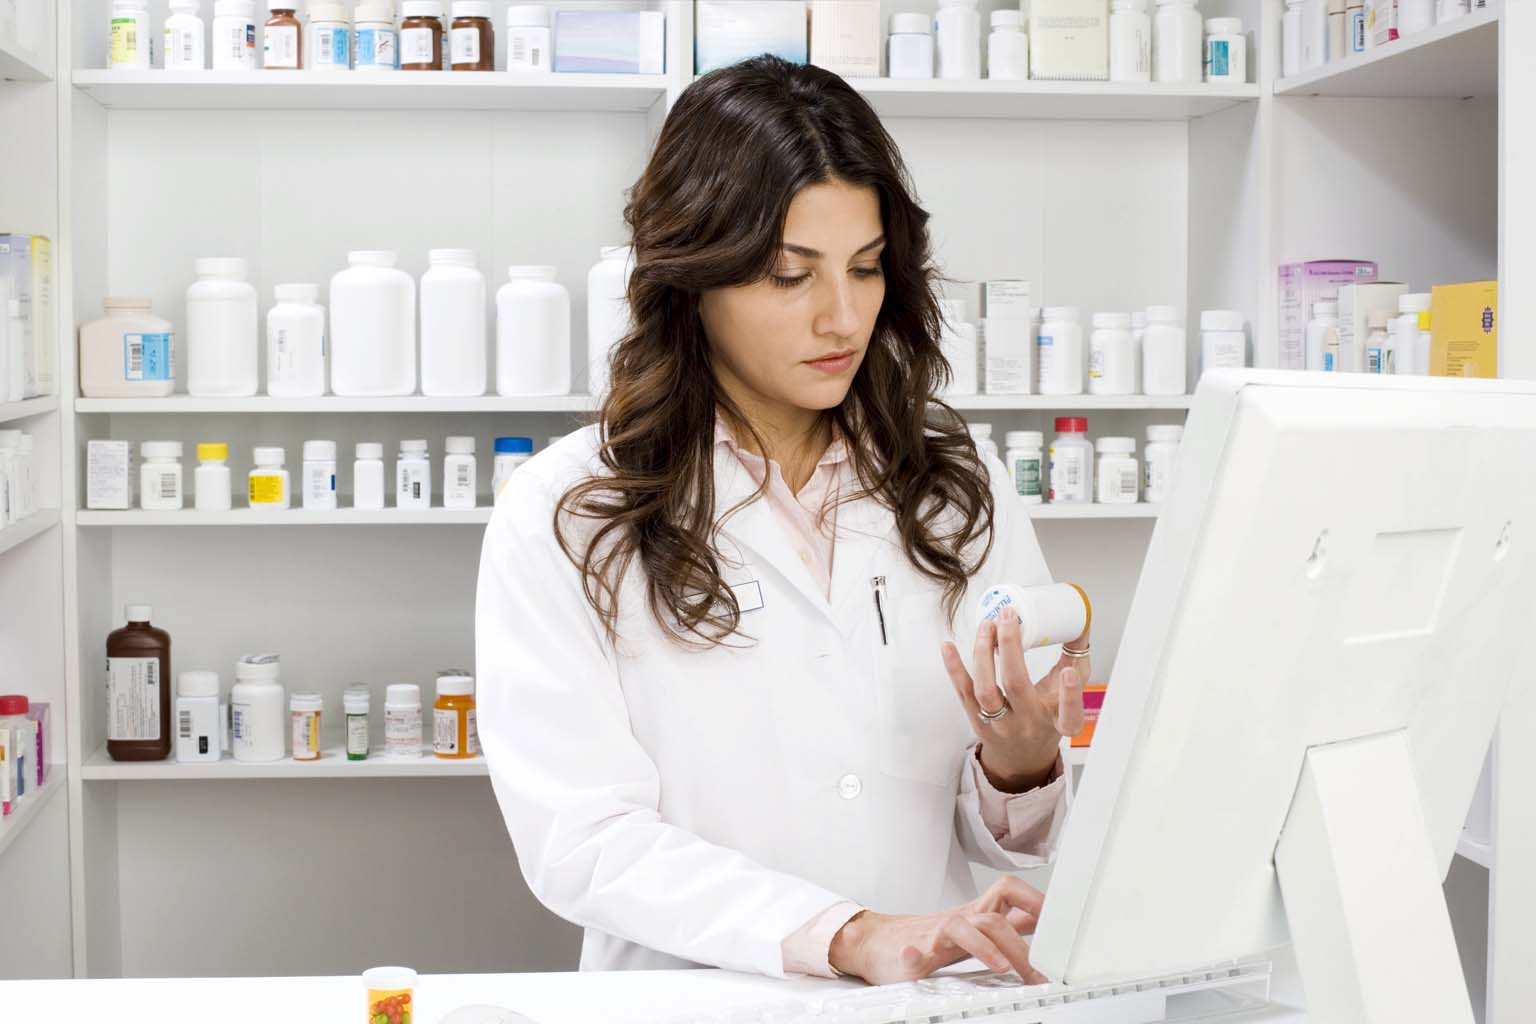 phamacist holding bottle of pills while using computer